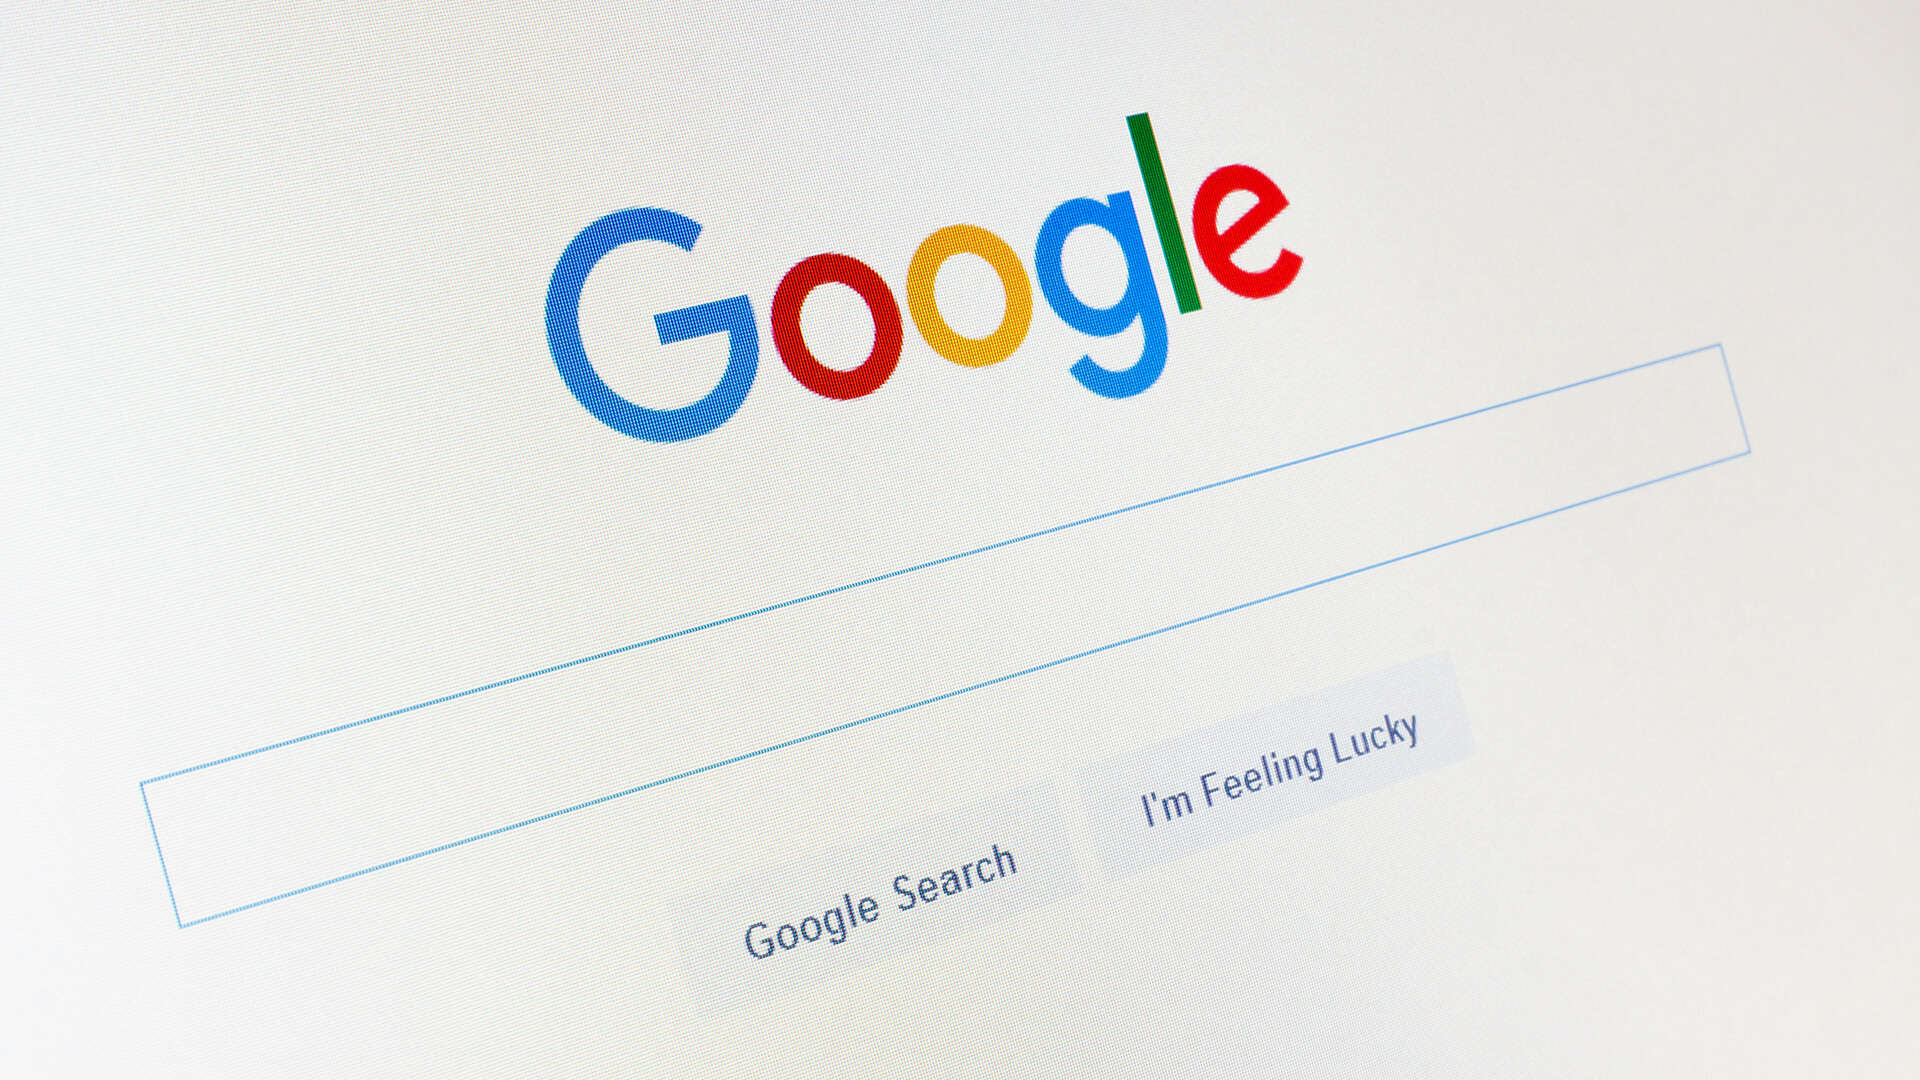 Google Search Page Image